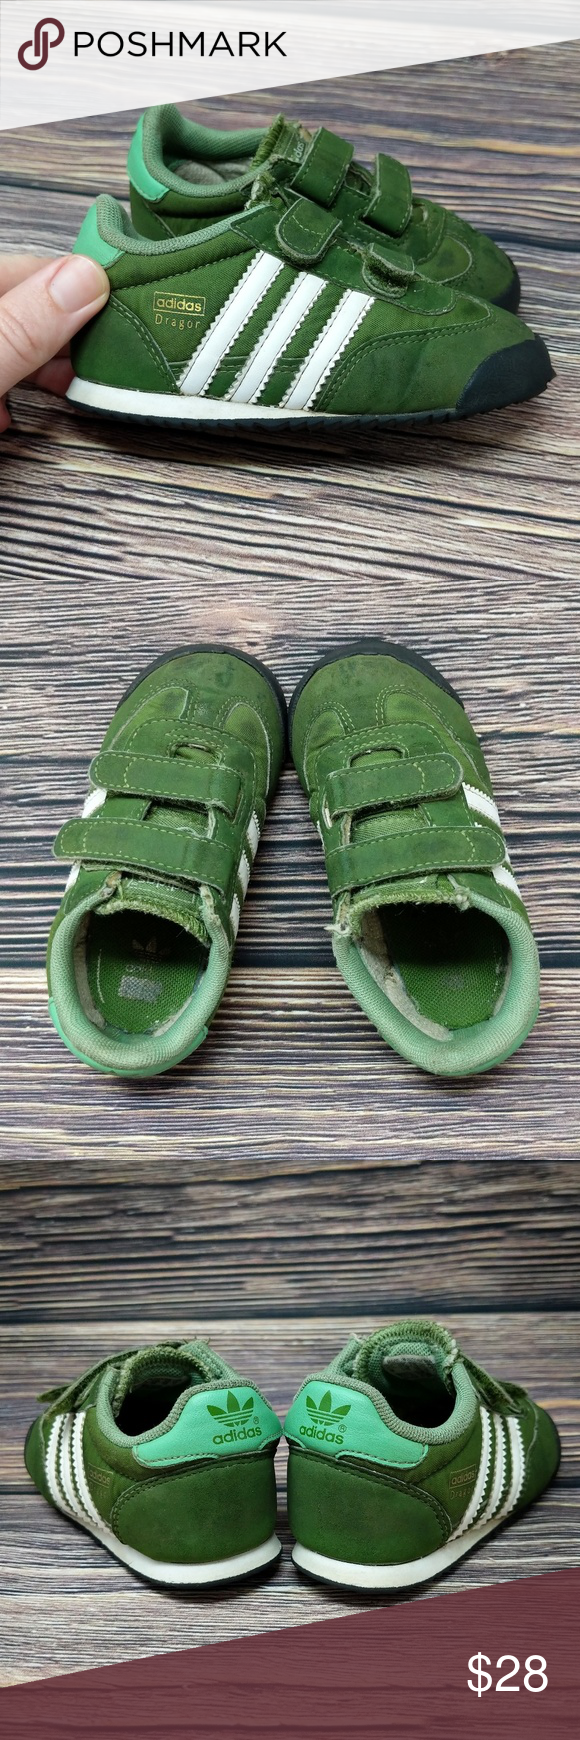 Adidas Dragon Trainer Toddler Baby Shoes sz 6 | White shoes ...